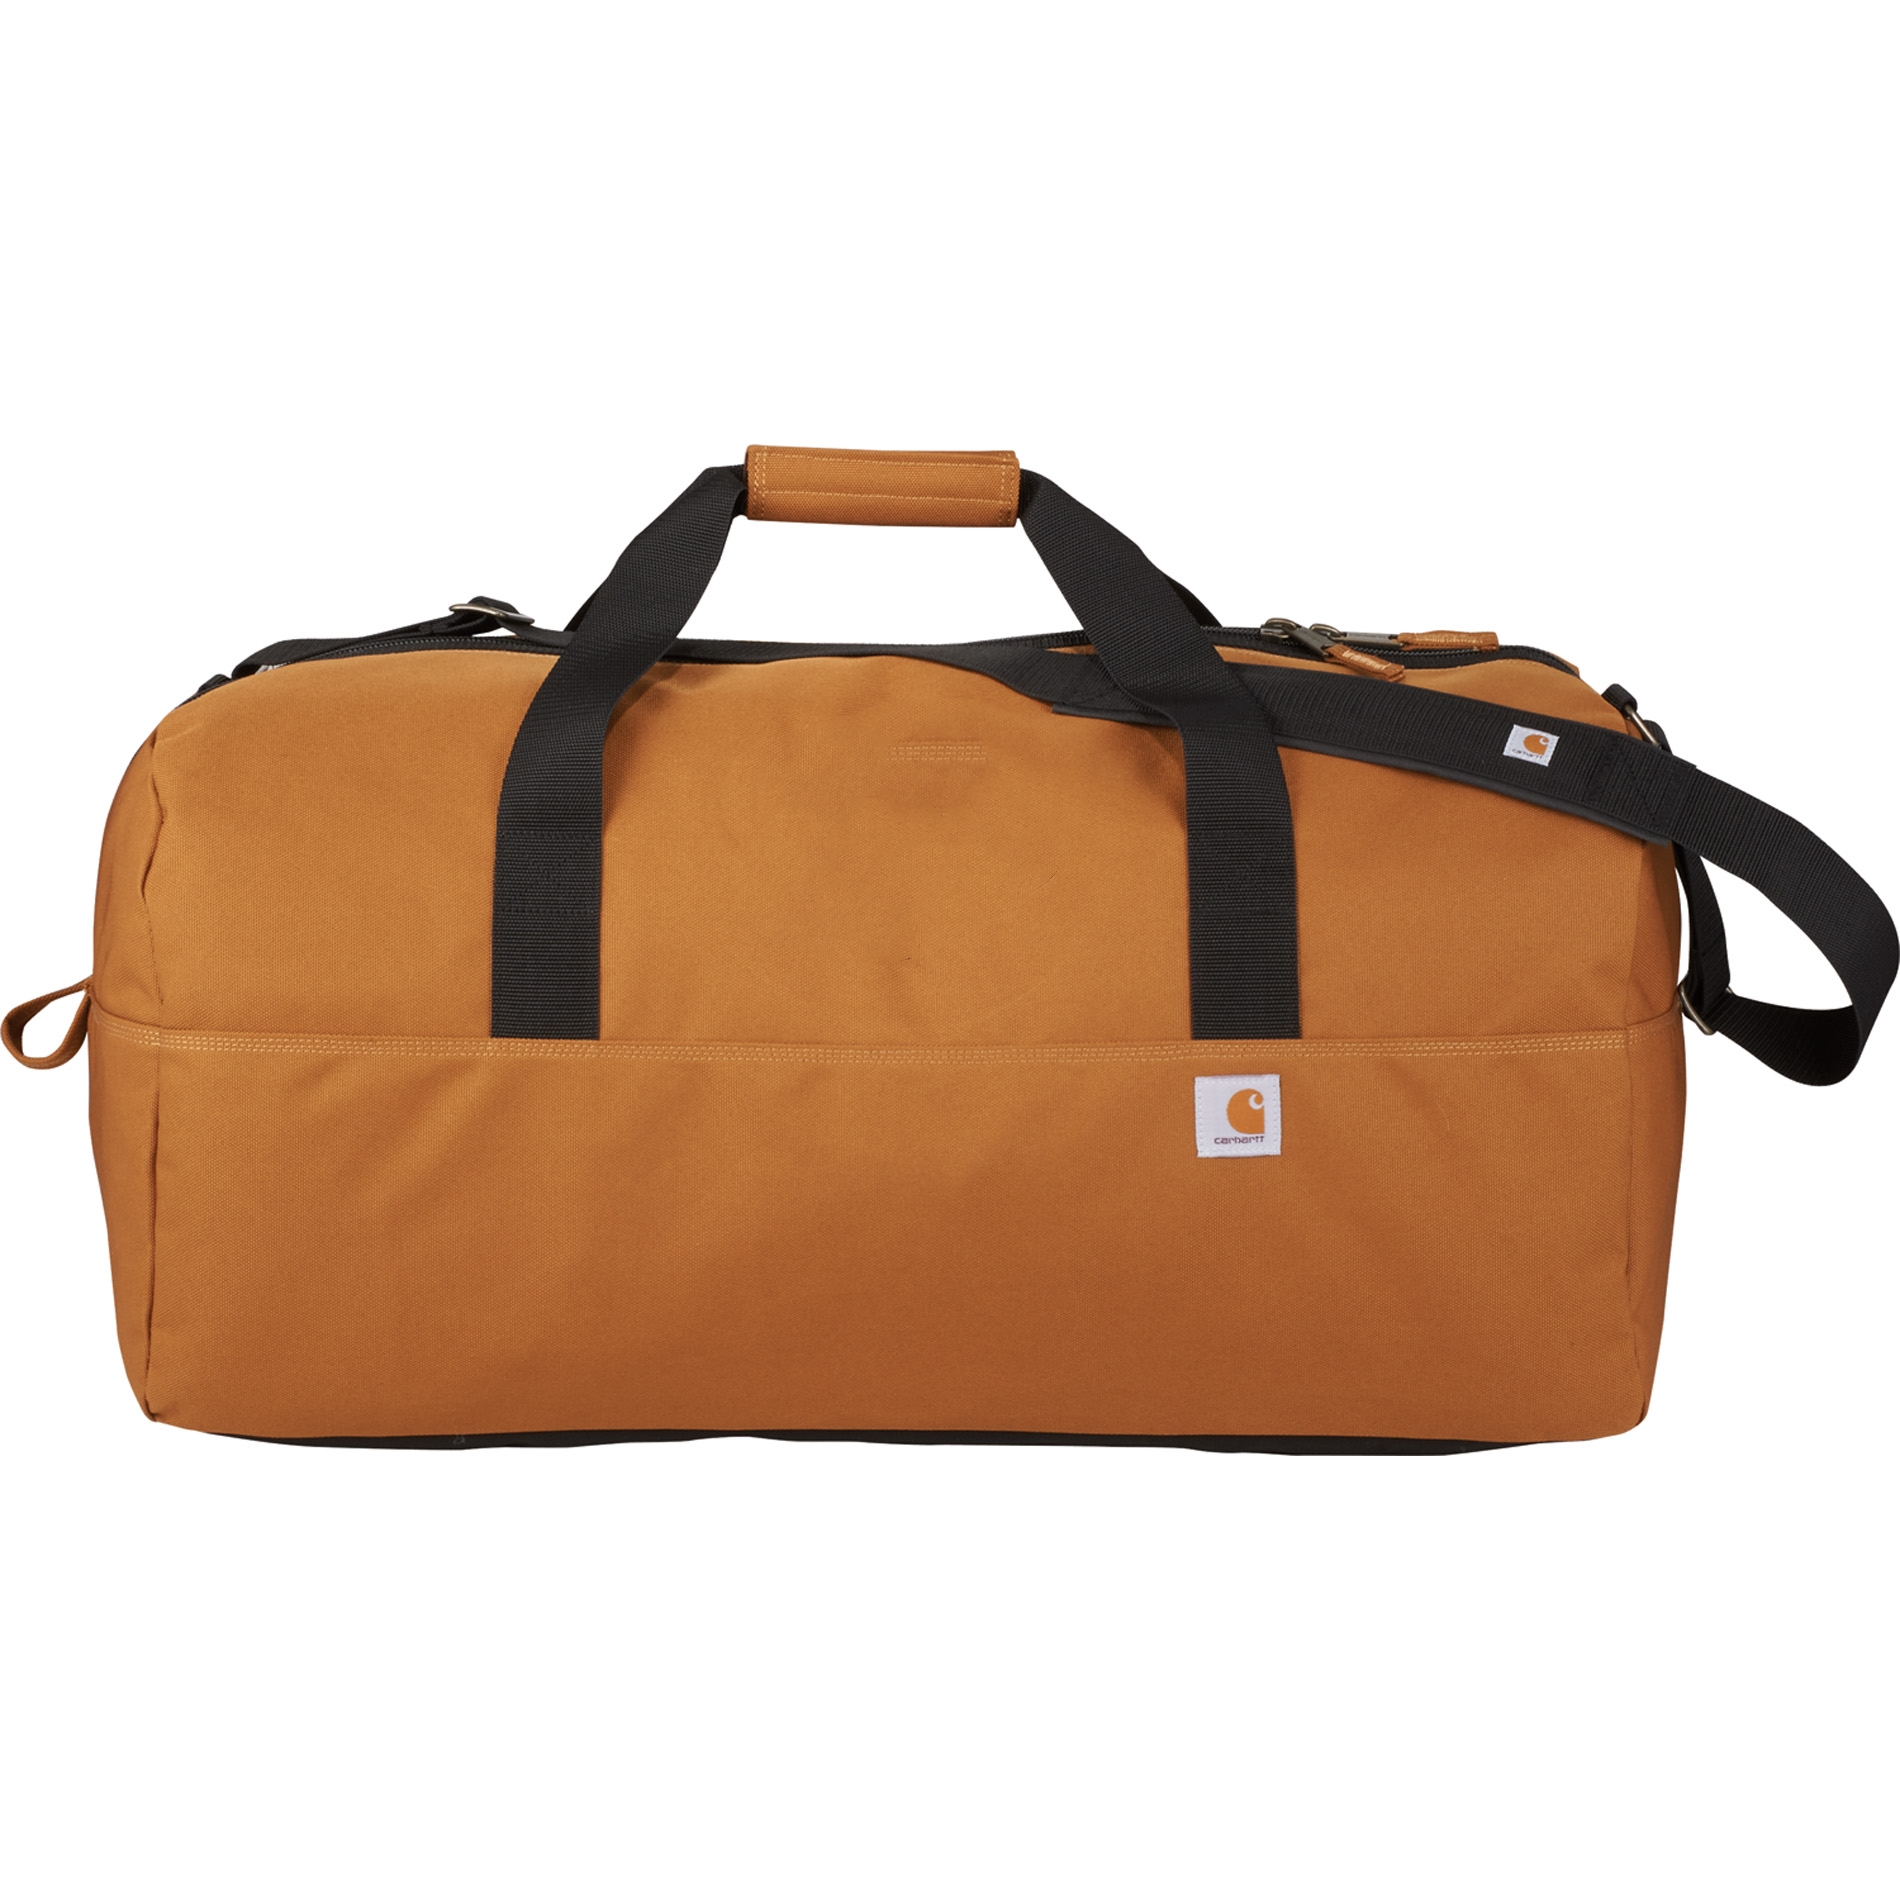 "Carhartt 1889-89 - Signature 28"" Duffel Bag"